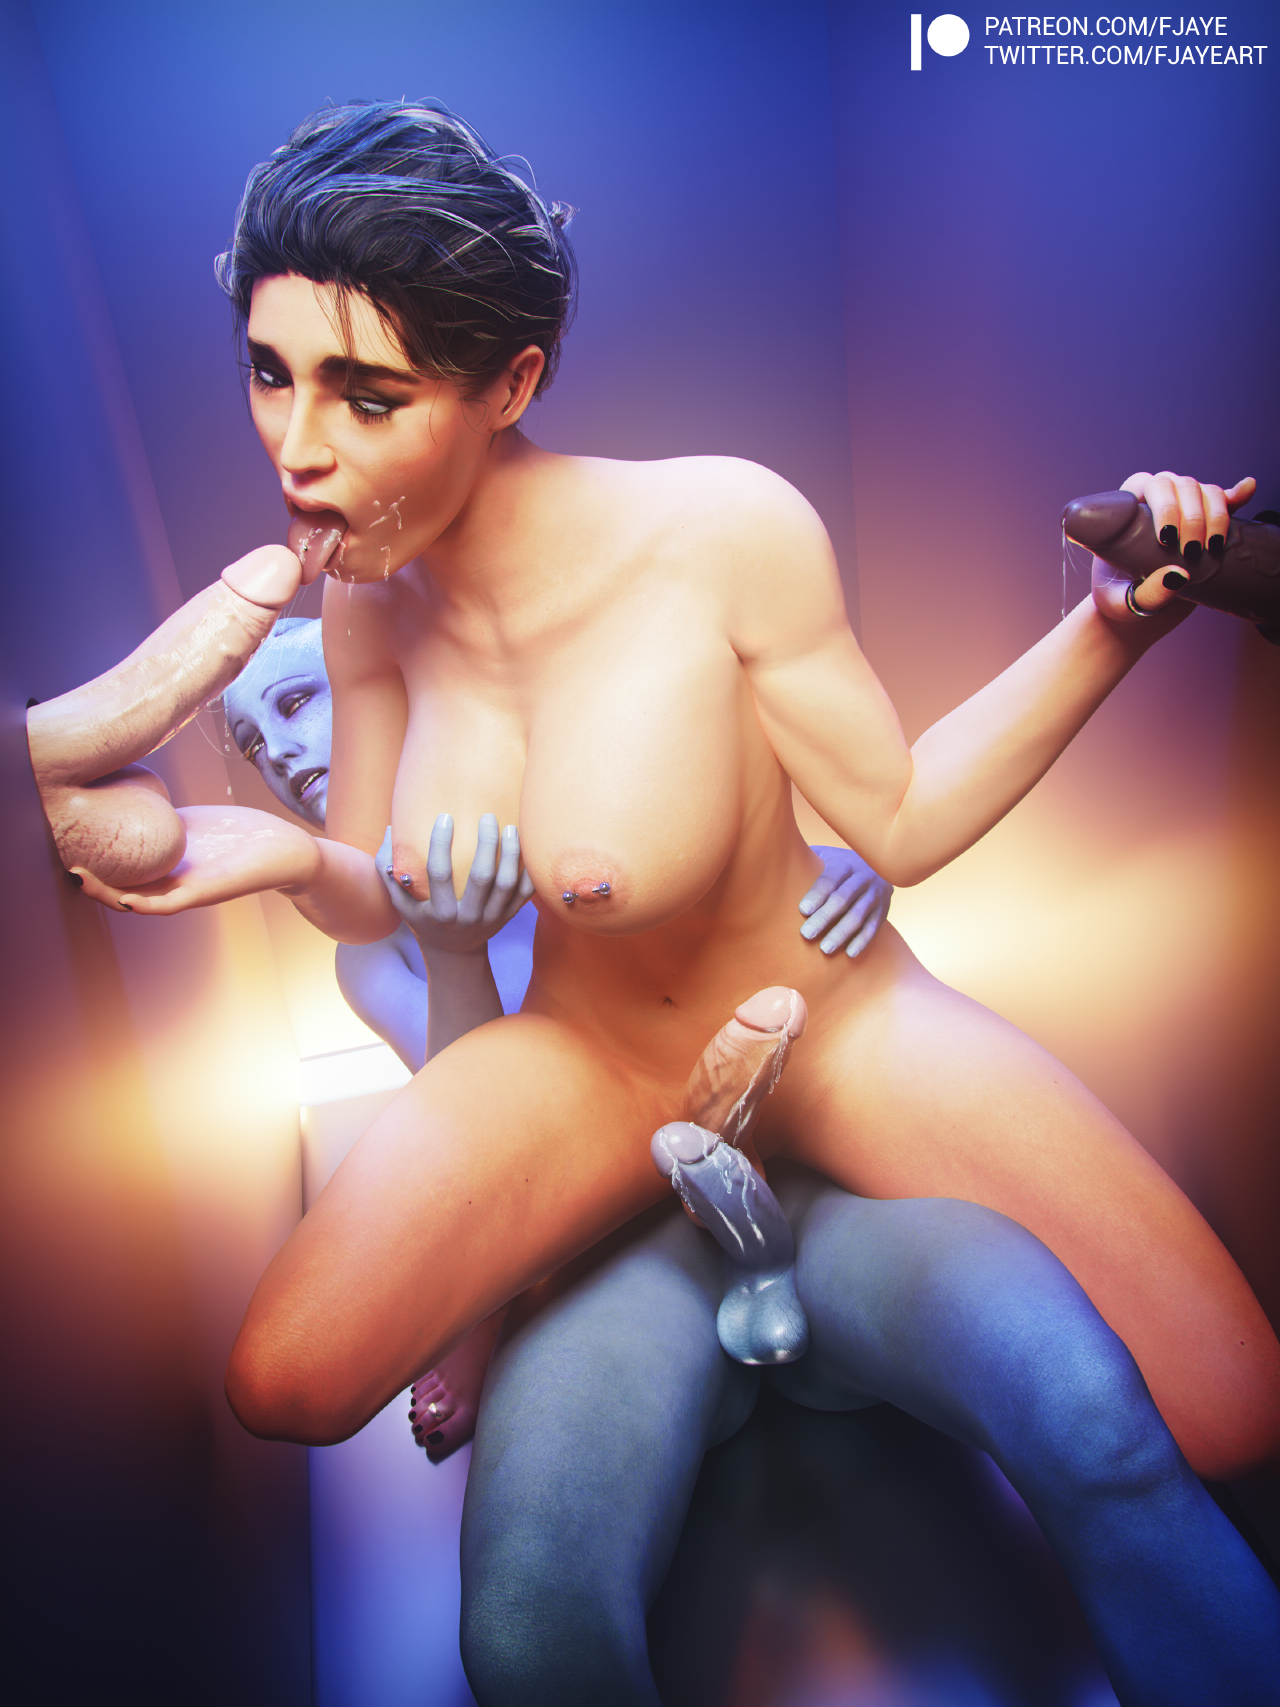 Mass Effect - Ashley and Liara at the gloryhole